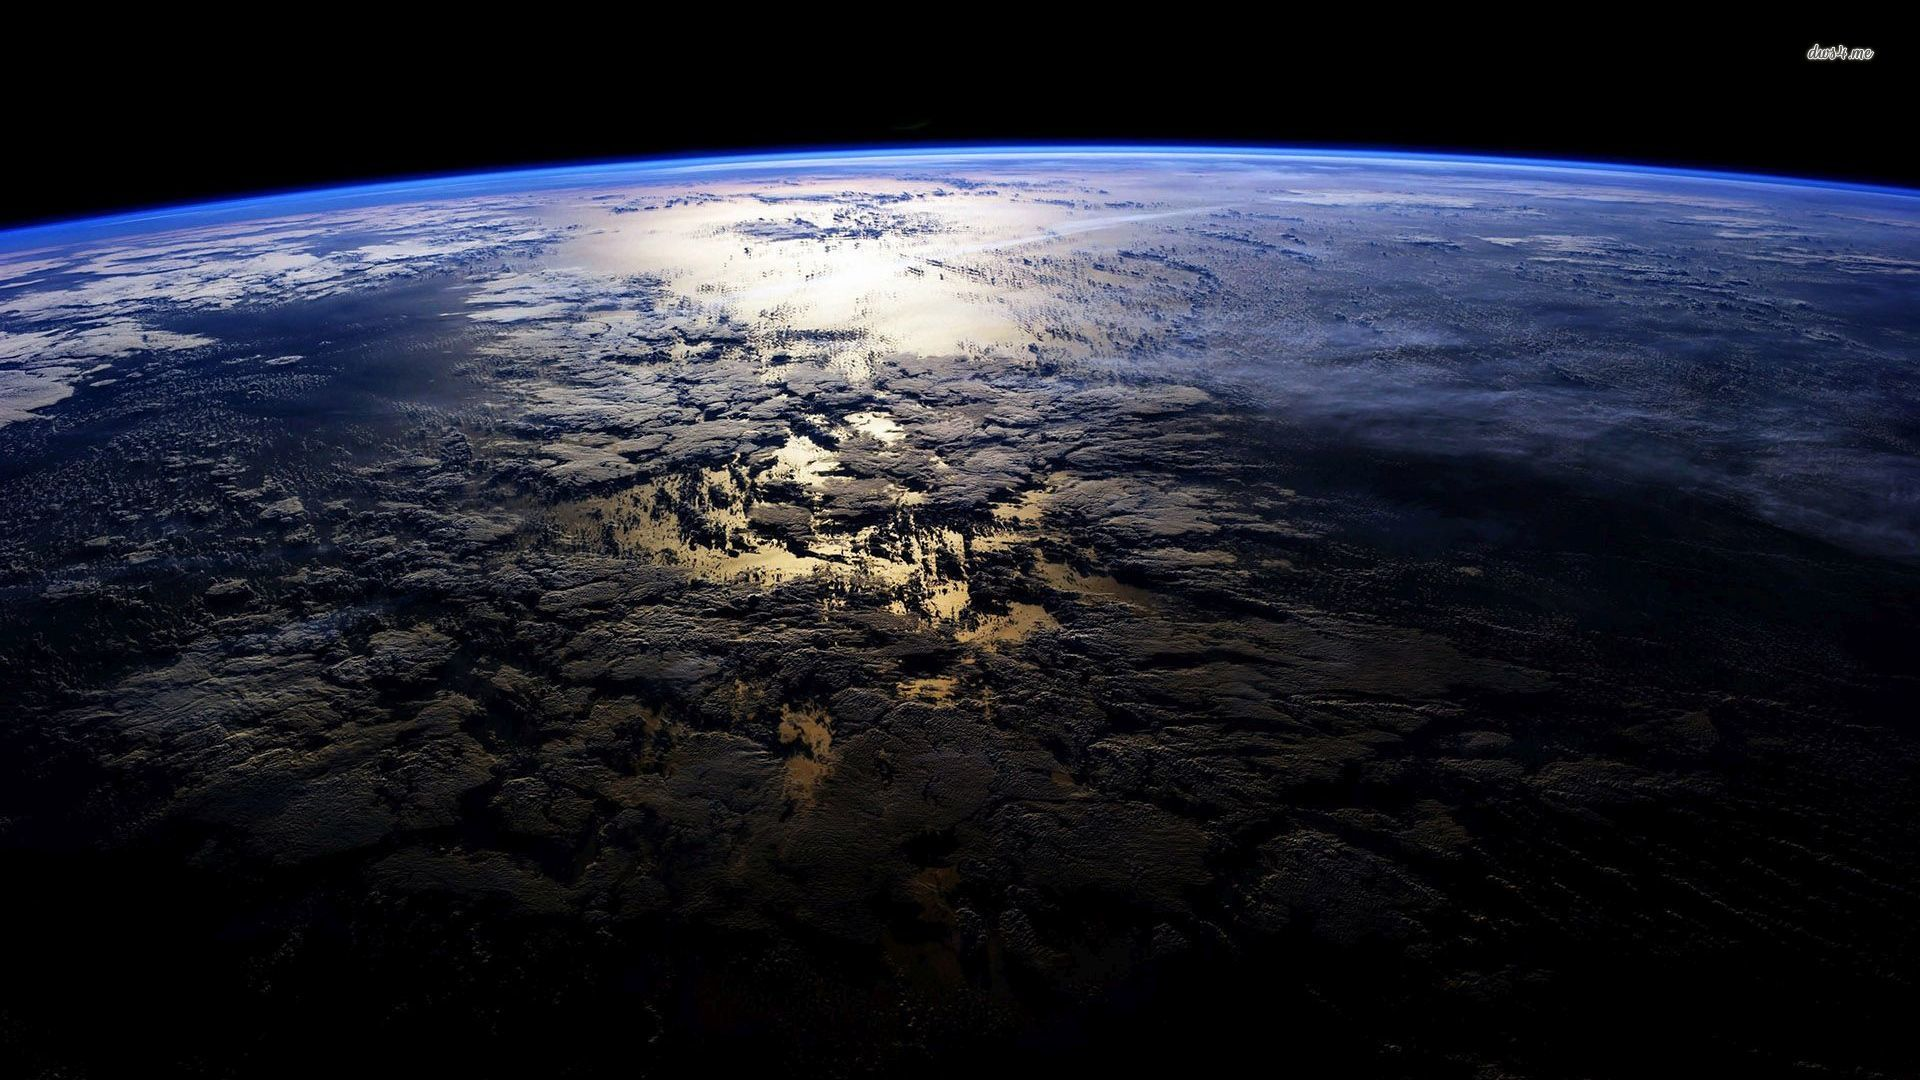 Earth Space Hd Wallpaper Pics about